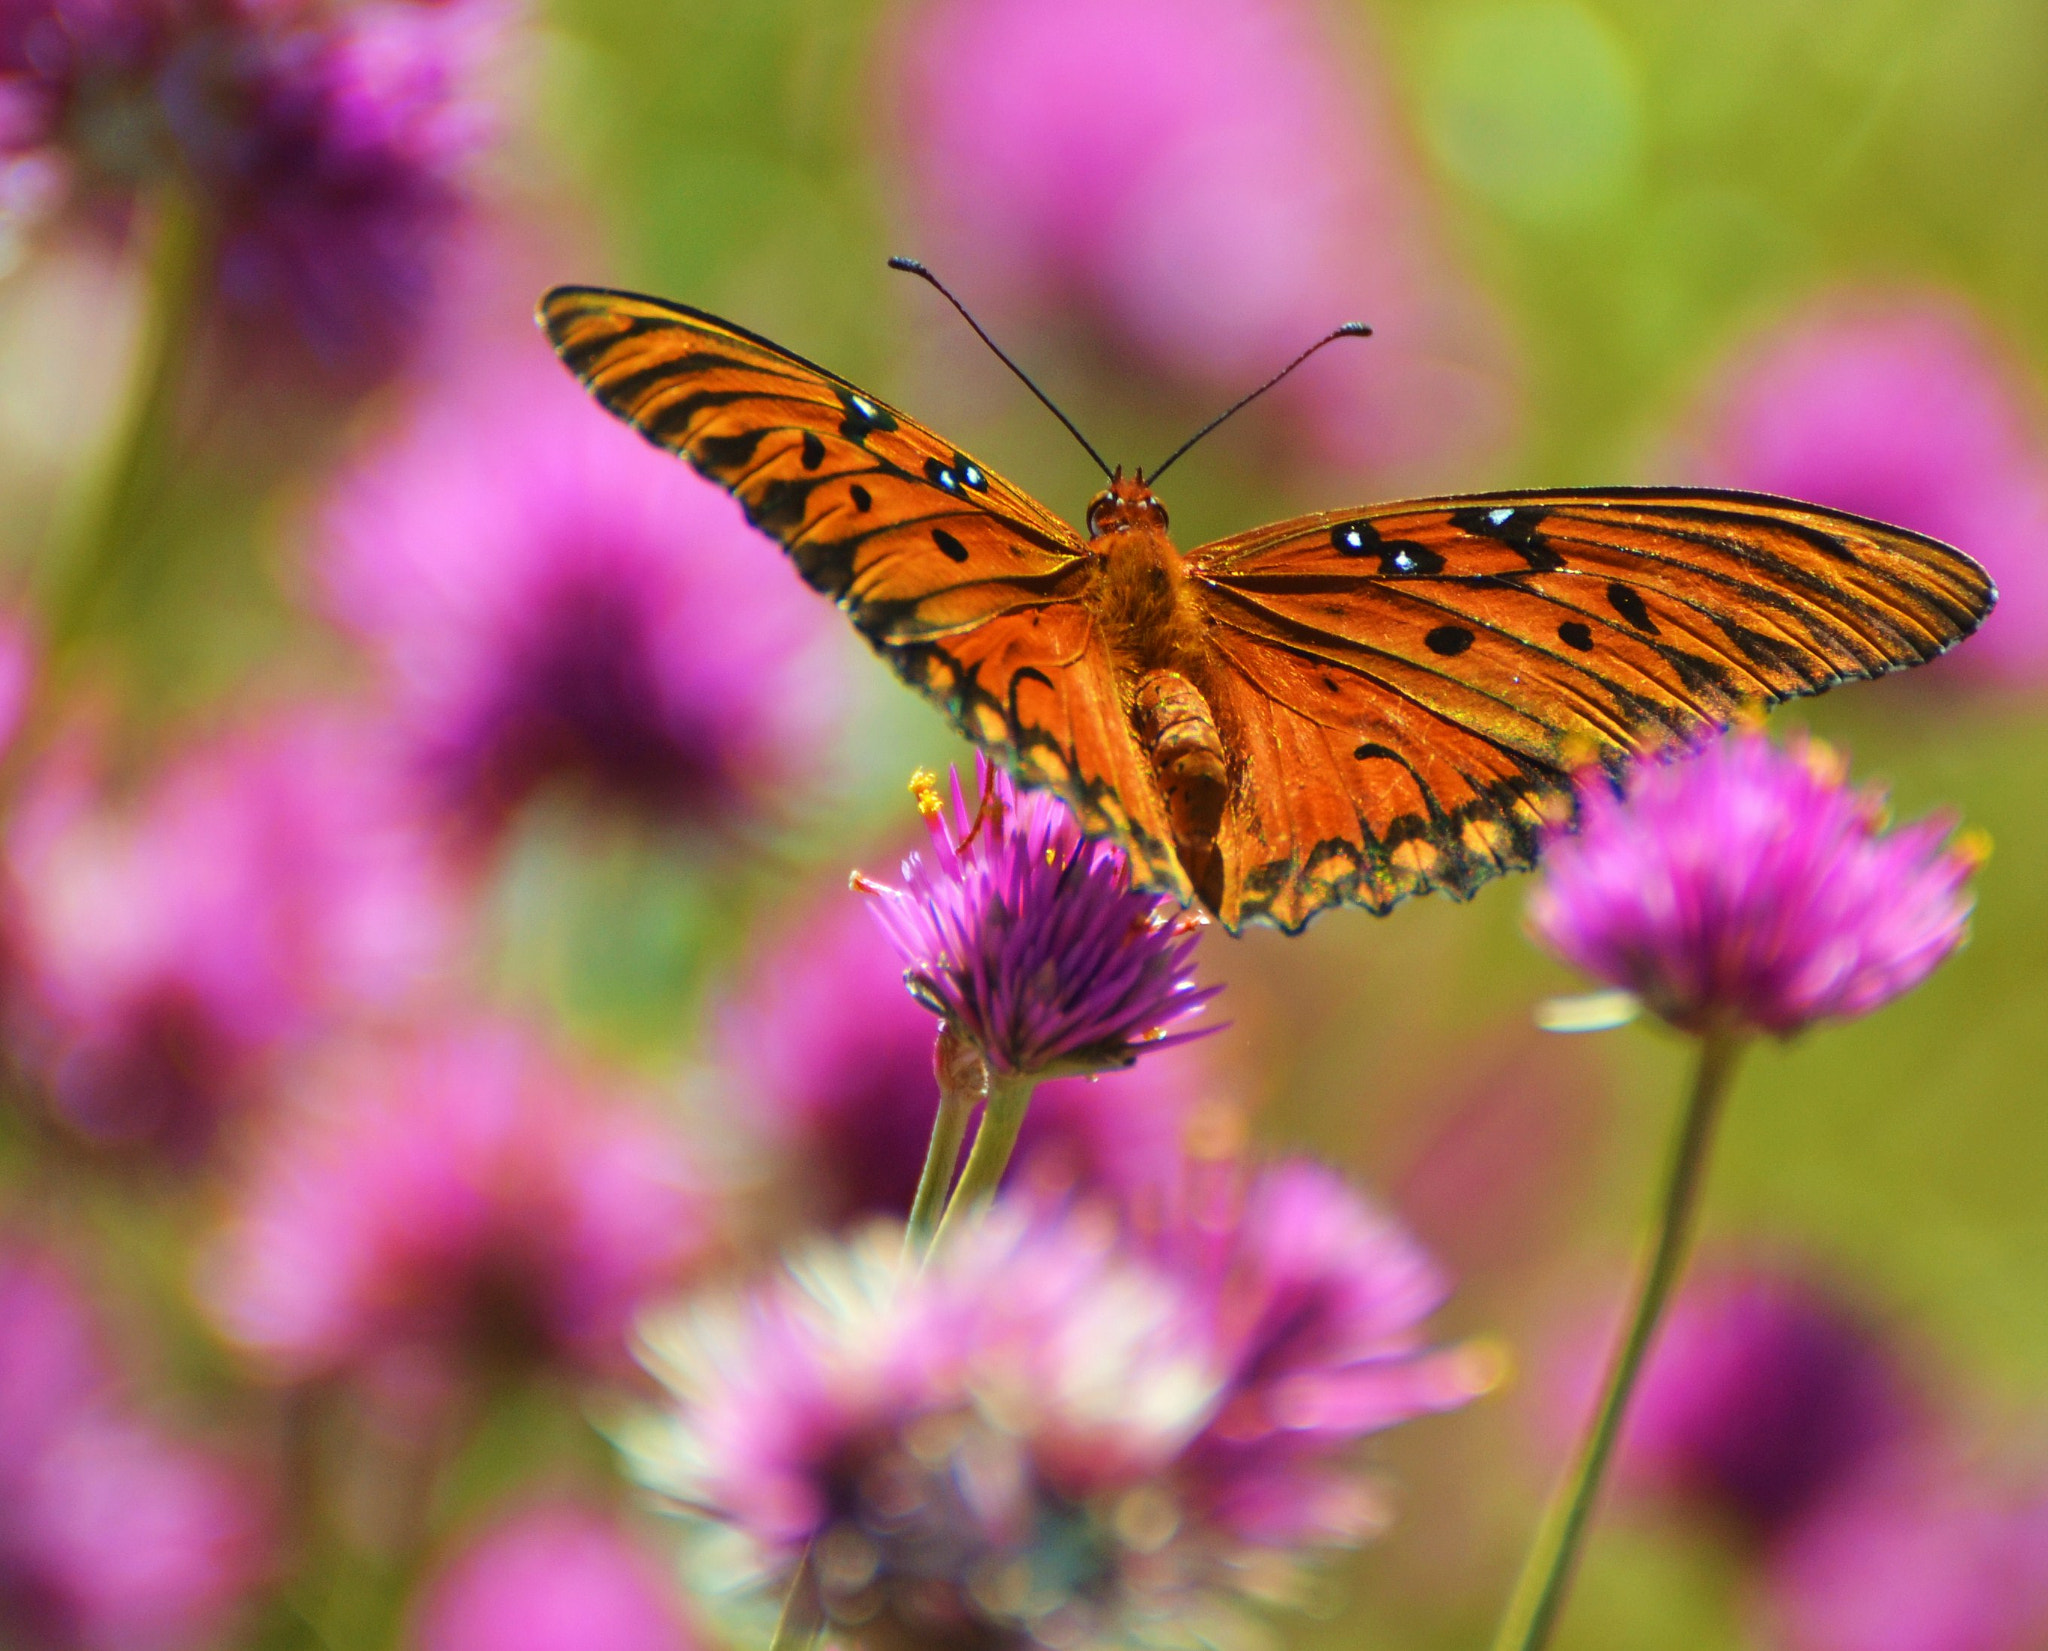 Photograph Purple/Orange by Michael Fitzsimmons on 500px